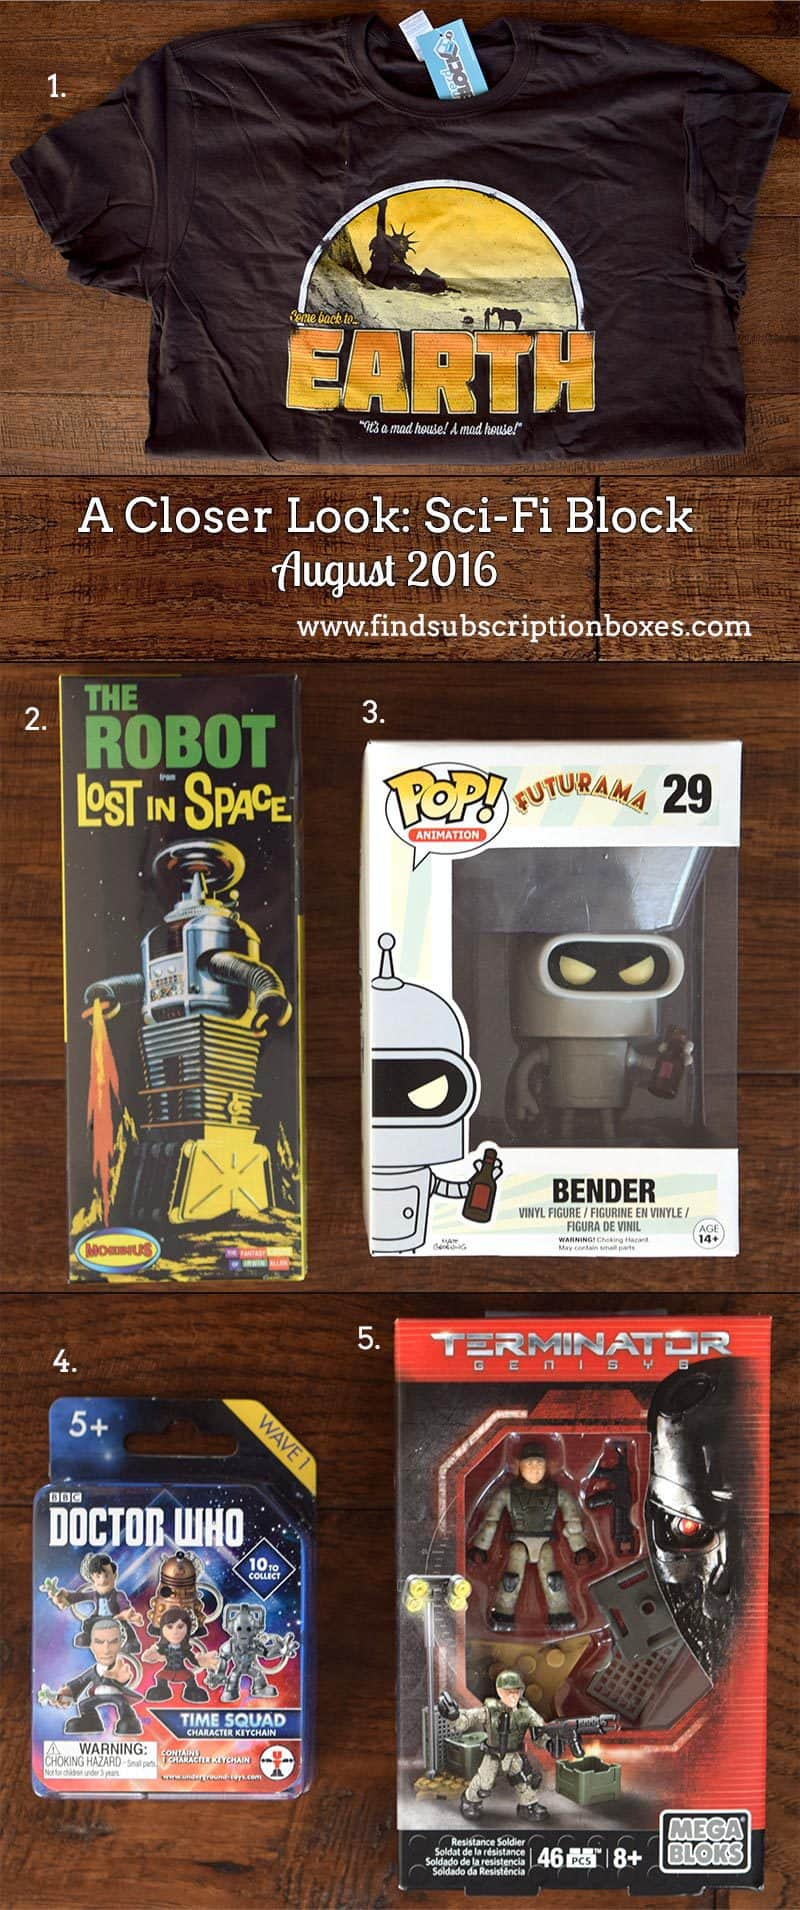 Sci-Fi Block August 2016 Review - Inside the Box